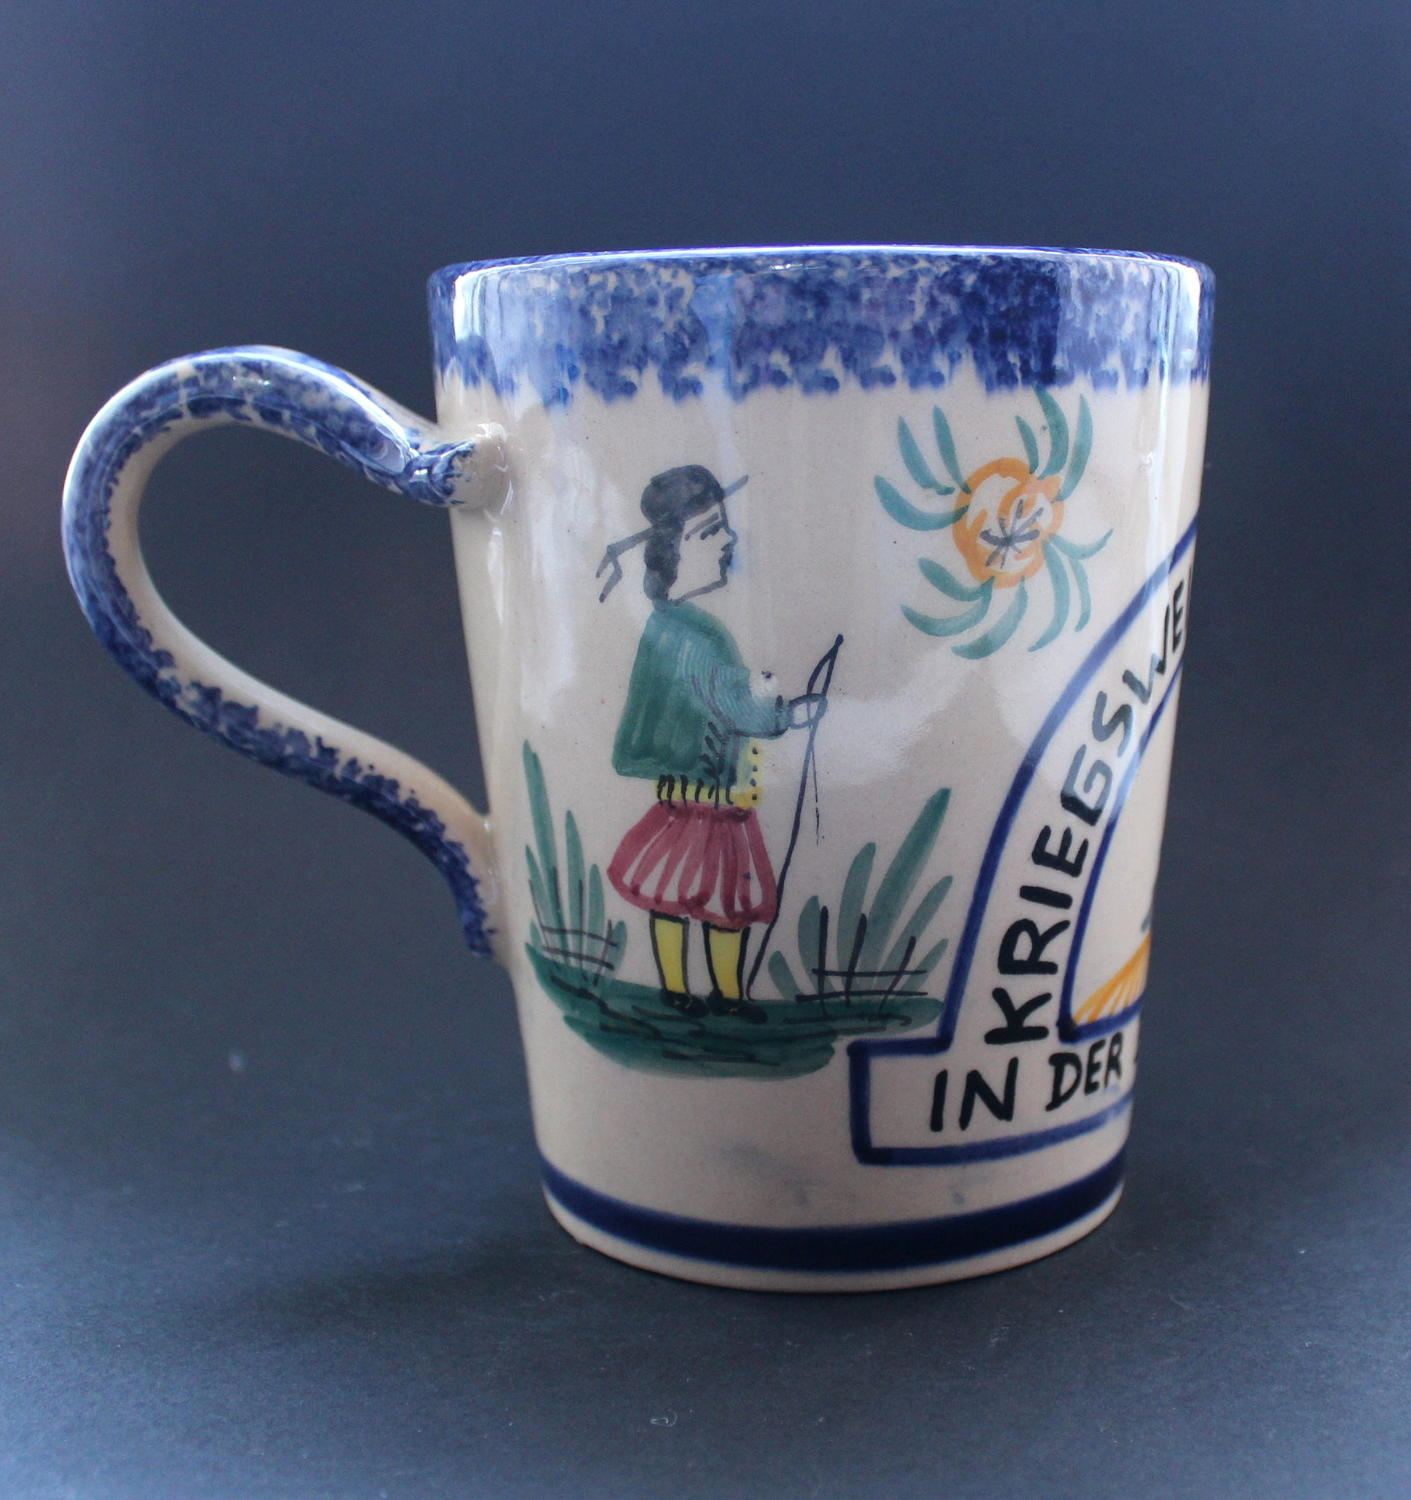 A Rare Quimper Faience Pottery German Occupation Mug 1940